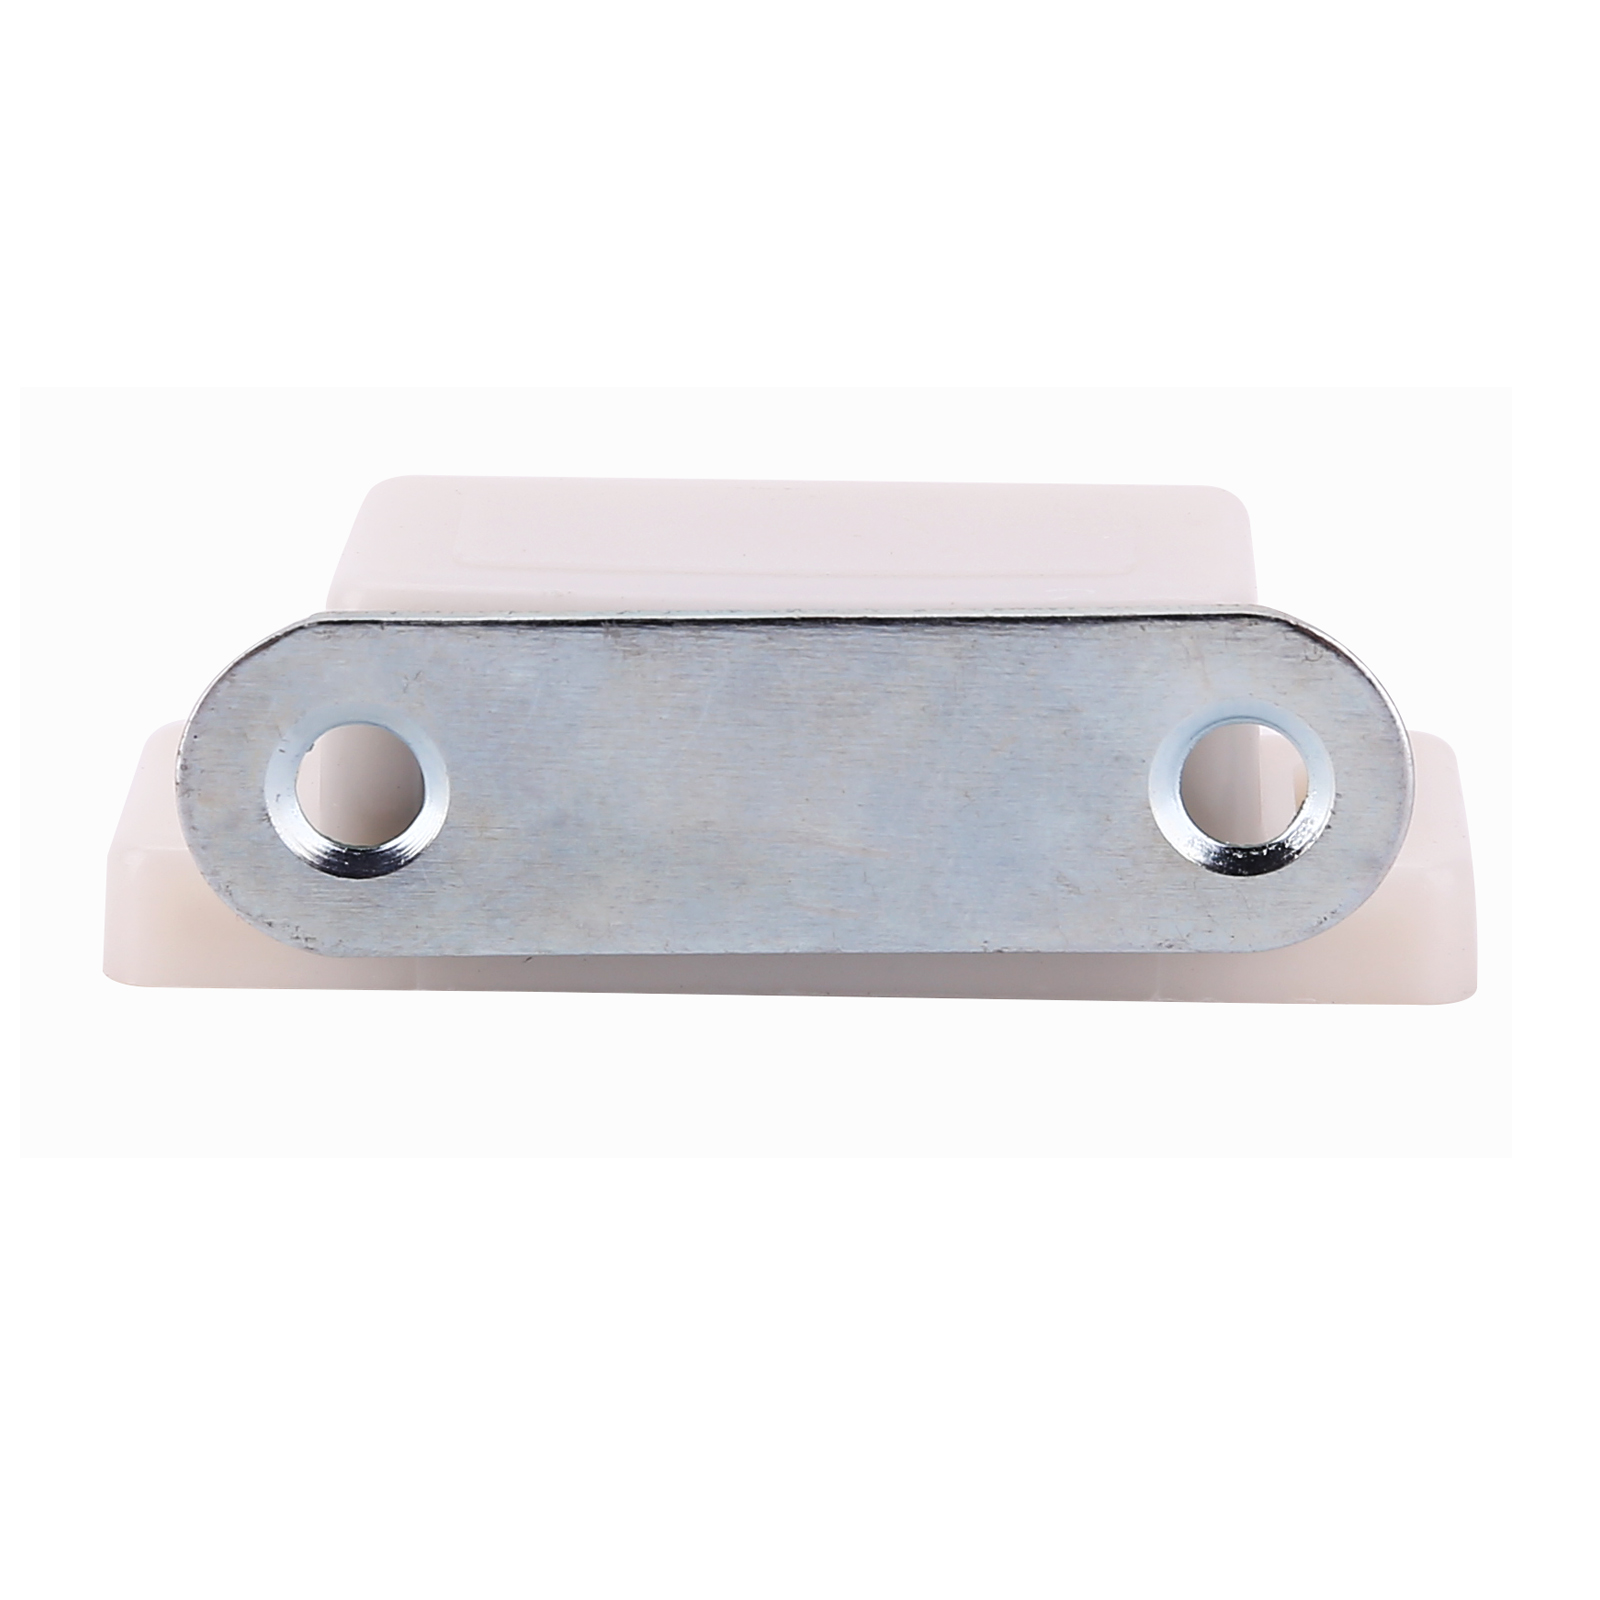 Kitchen Cabinet Magnets: 10x New Heavy Duty Magnetic Door Catch White Cabinet